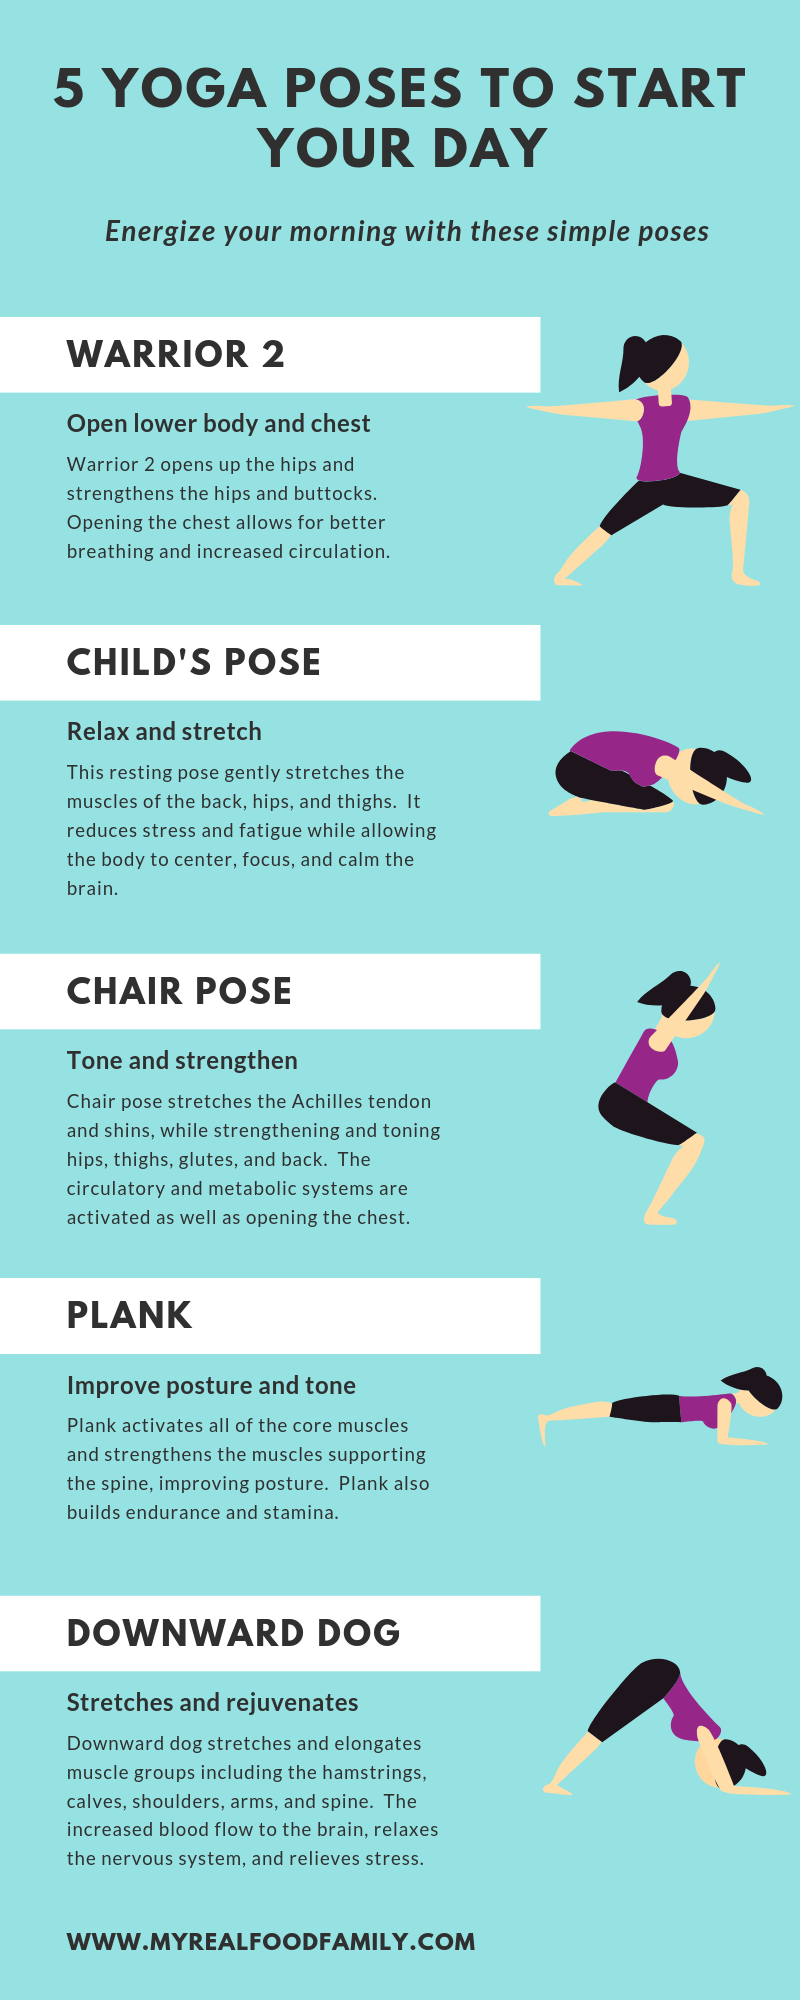 5 Simple Yoga Poses To Start Your Day My Real Food Family Easy Yoga Easy Yoga Poses Yoga Poses